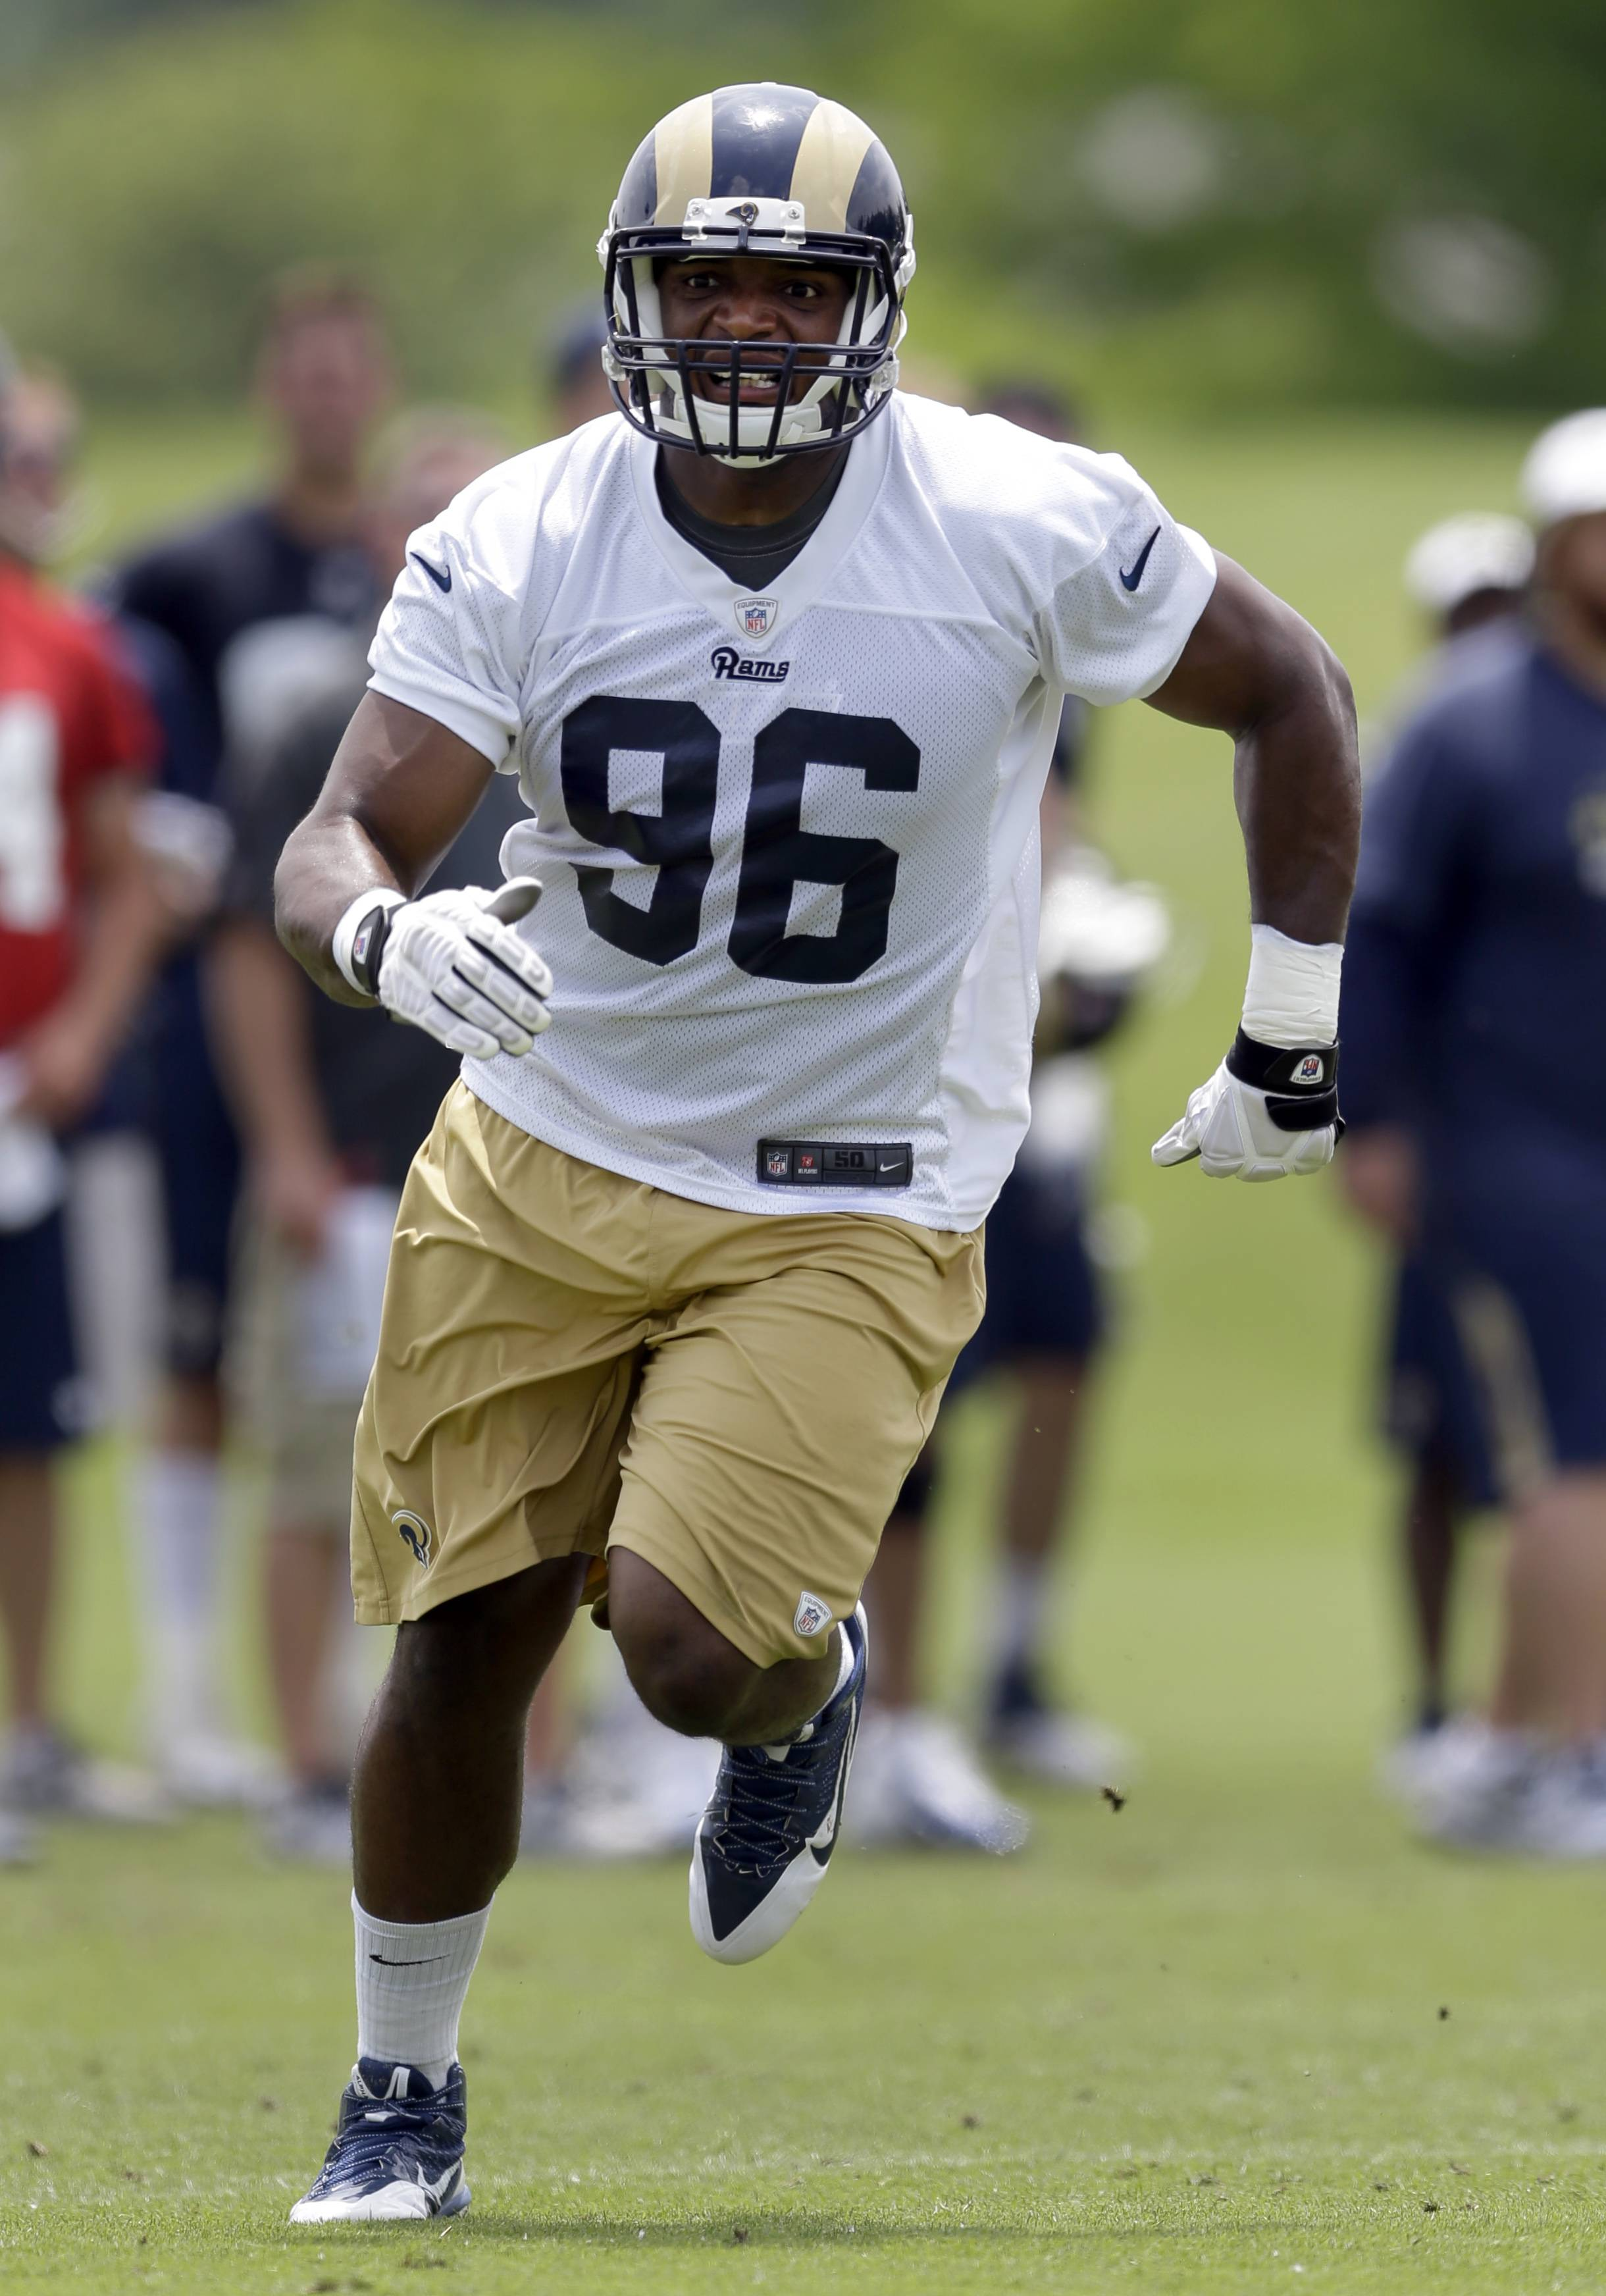 St. Louis Rams defensive end Michael Sam runs during an organized team activity at the NFL football team's practice facility Friday, June 6, 2014, in St. Louis.